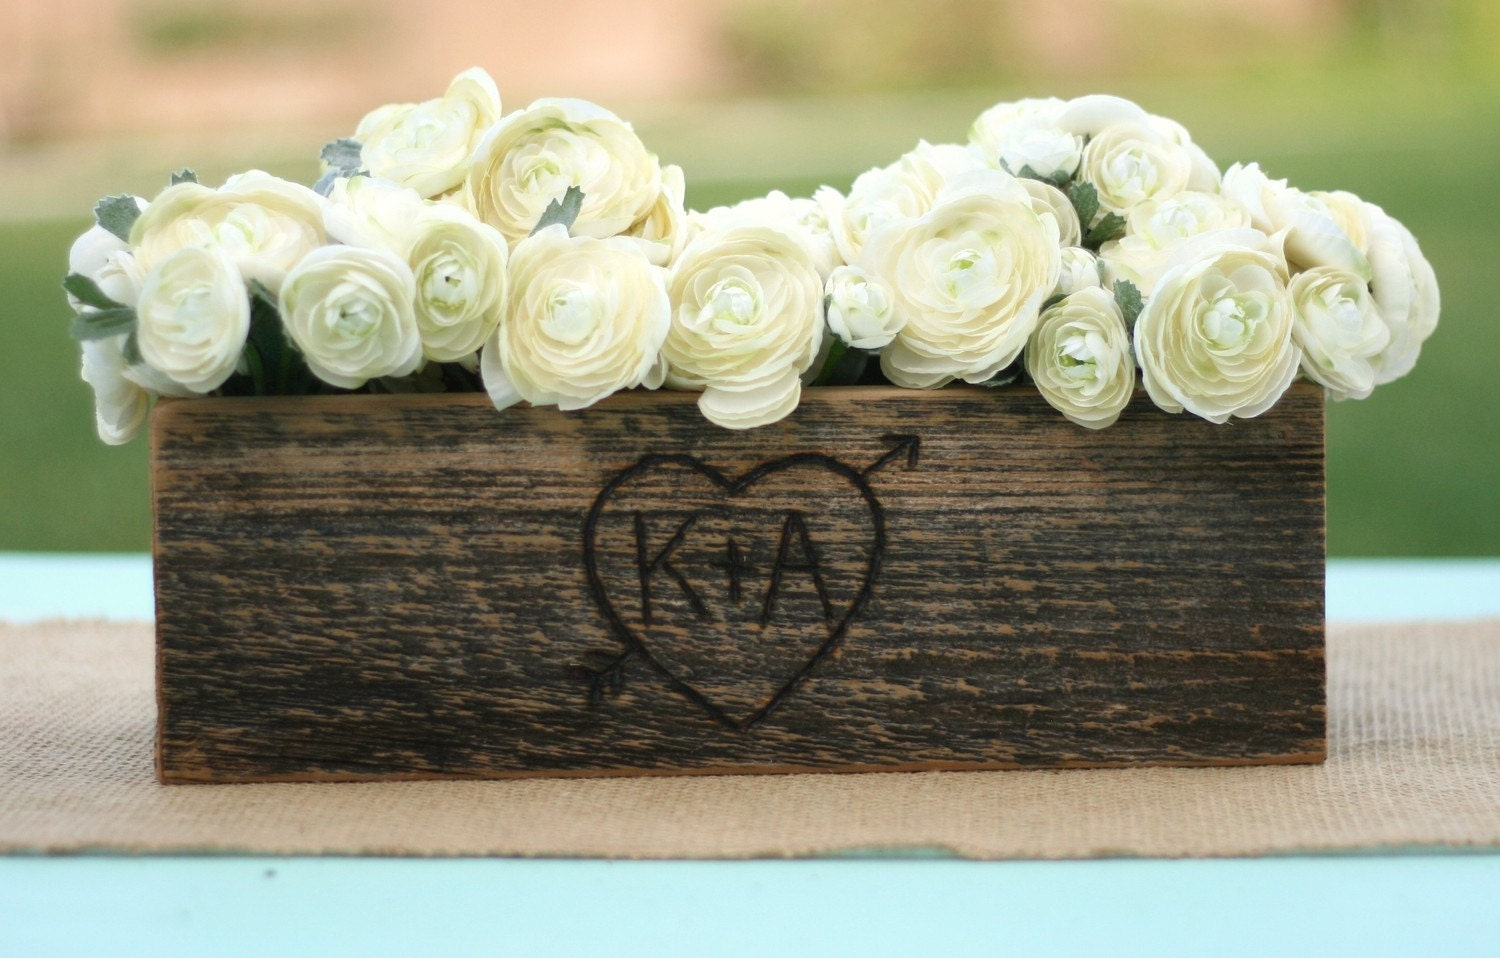 Barn Wood Rustic Vase Centerpiece Personalized By Braggingbags